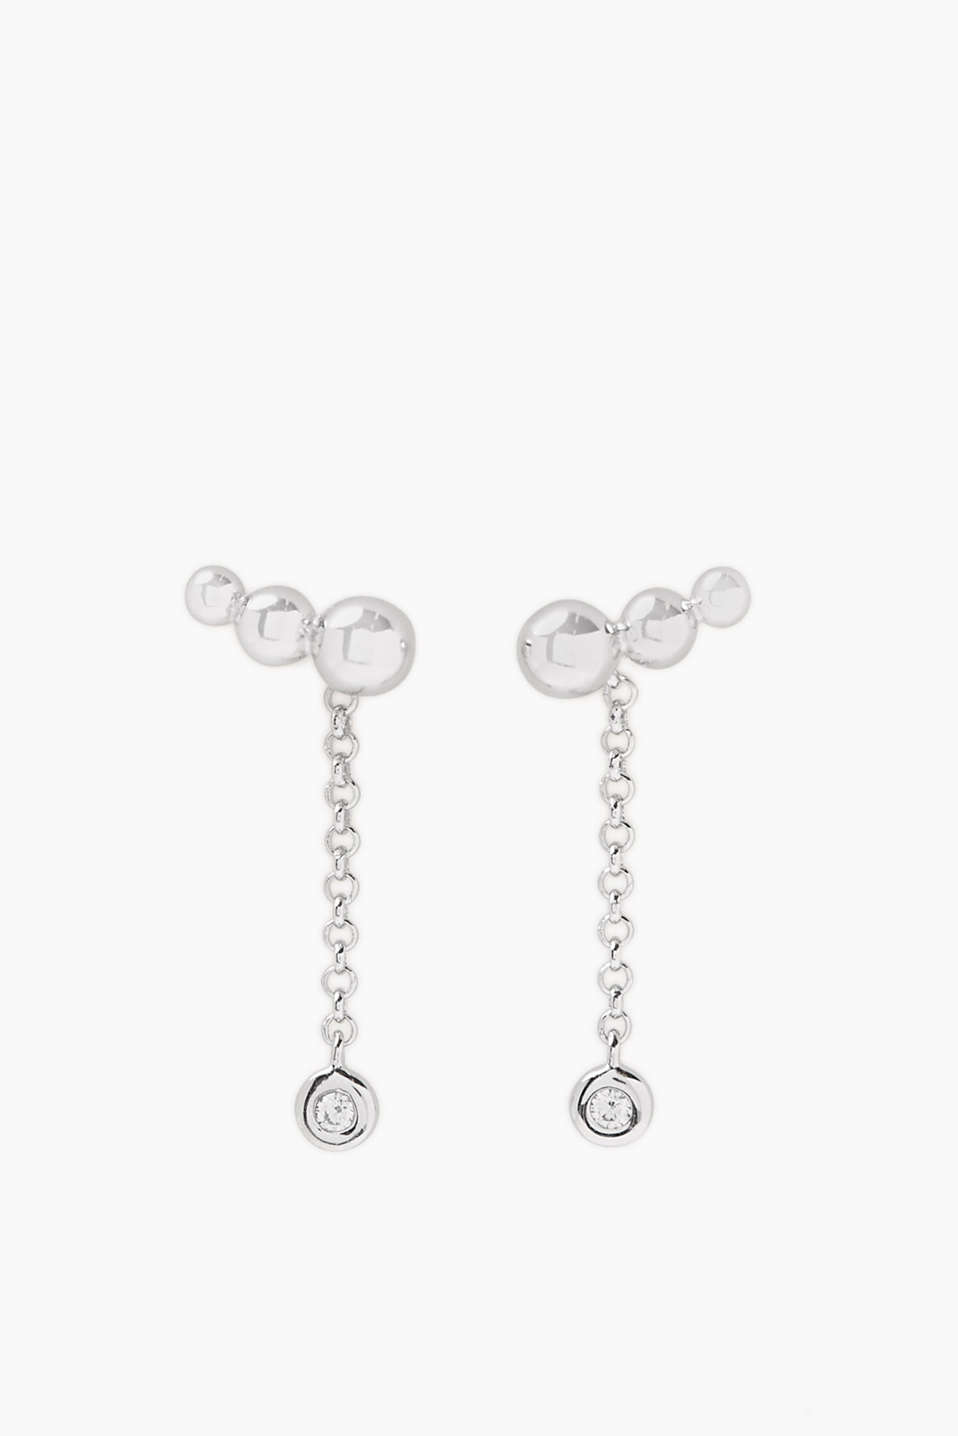 Earclimbers in sterling silver with fine pendants and single zirconia stones